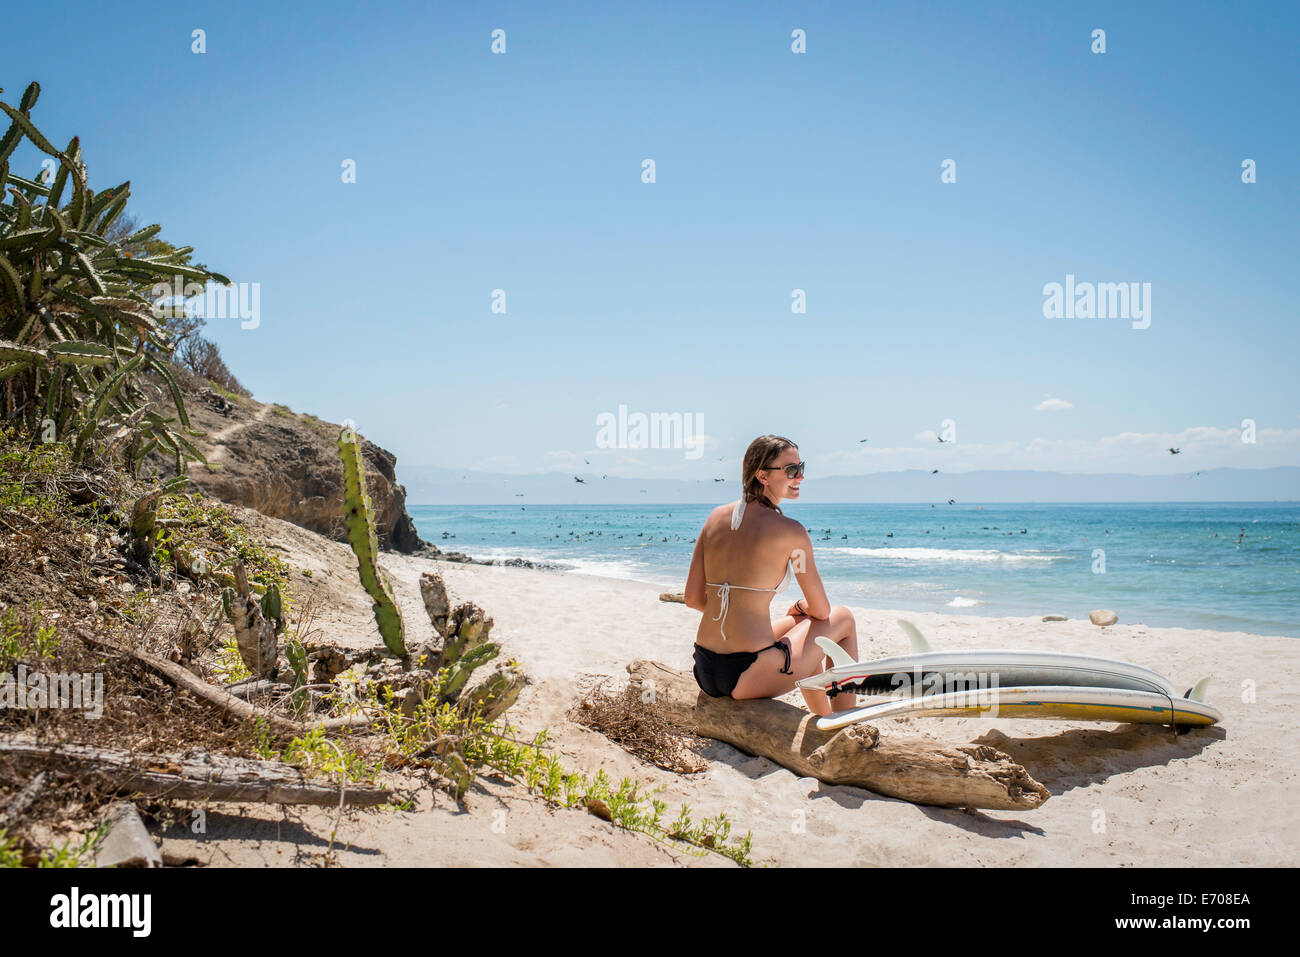 Young woman sitting on driftwood at beach, surfboard by her side - Stock Image